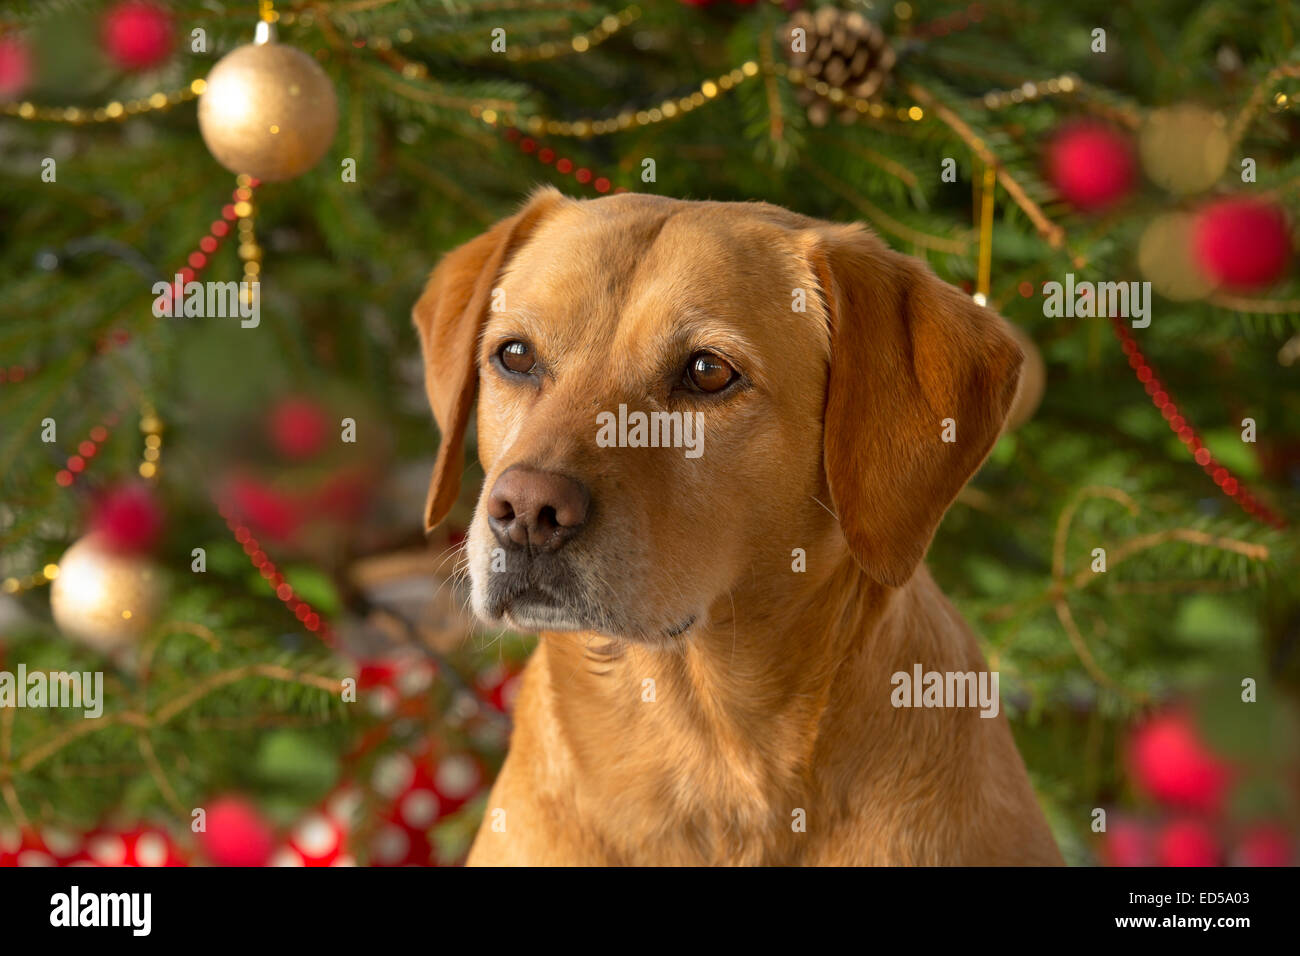 Yellow Labrador in Christmas setting Stock Photo